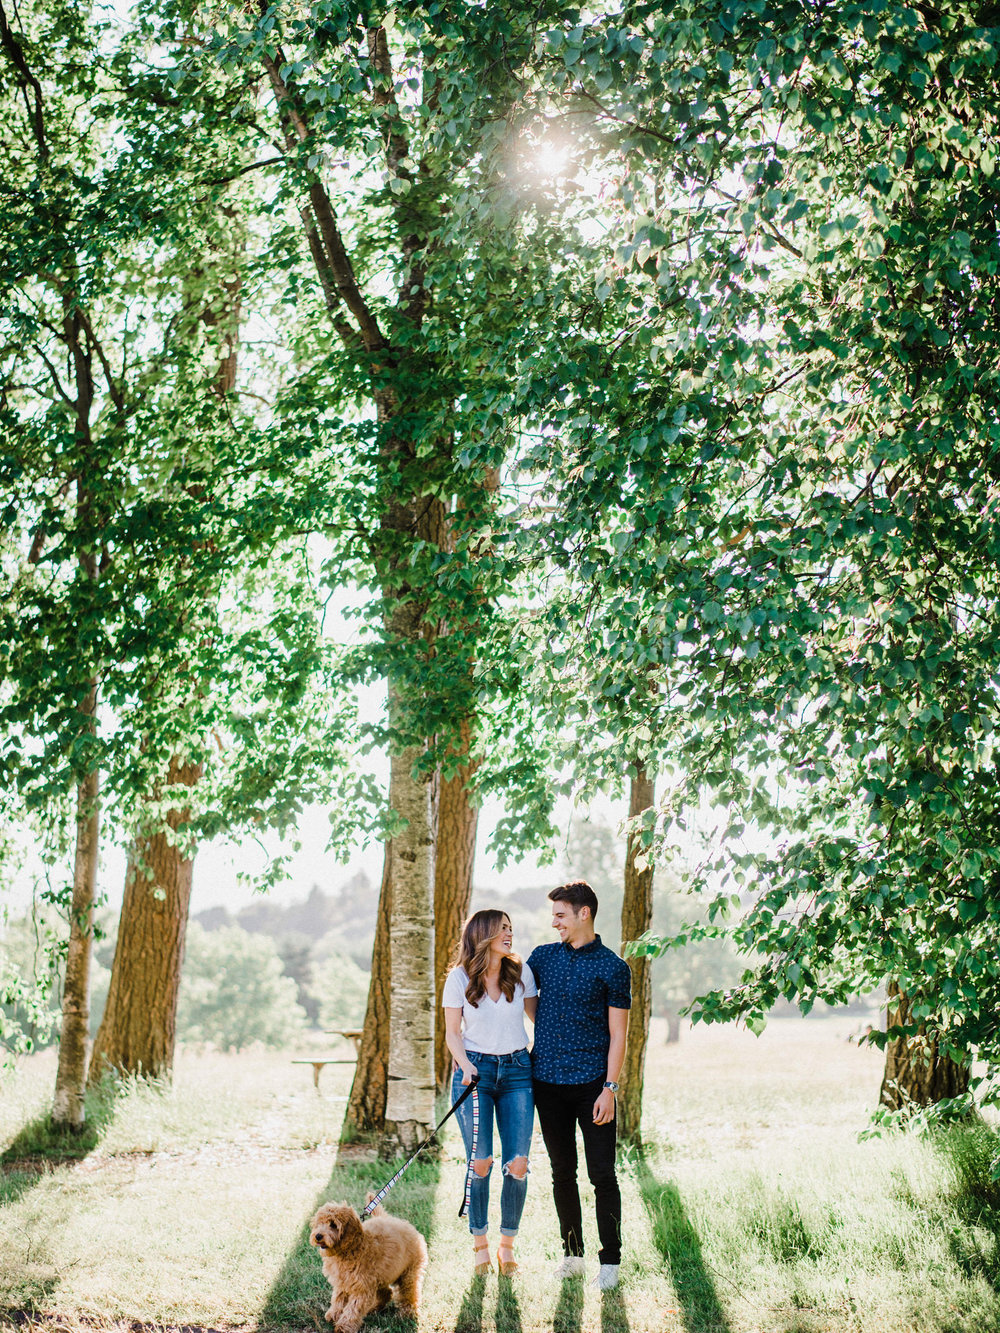 041-summery-engagement-session-with-a-goldendoodle-at-discovery-park-on-film.jpg